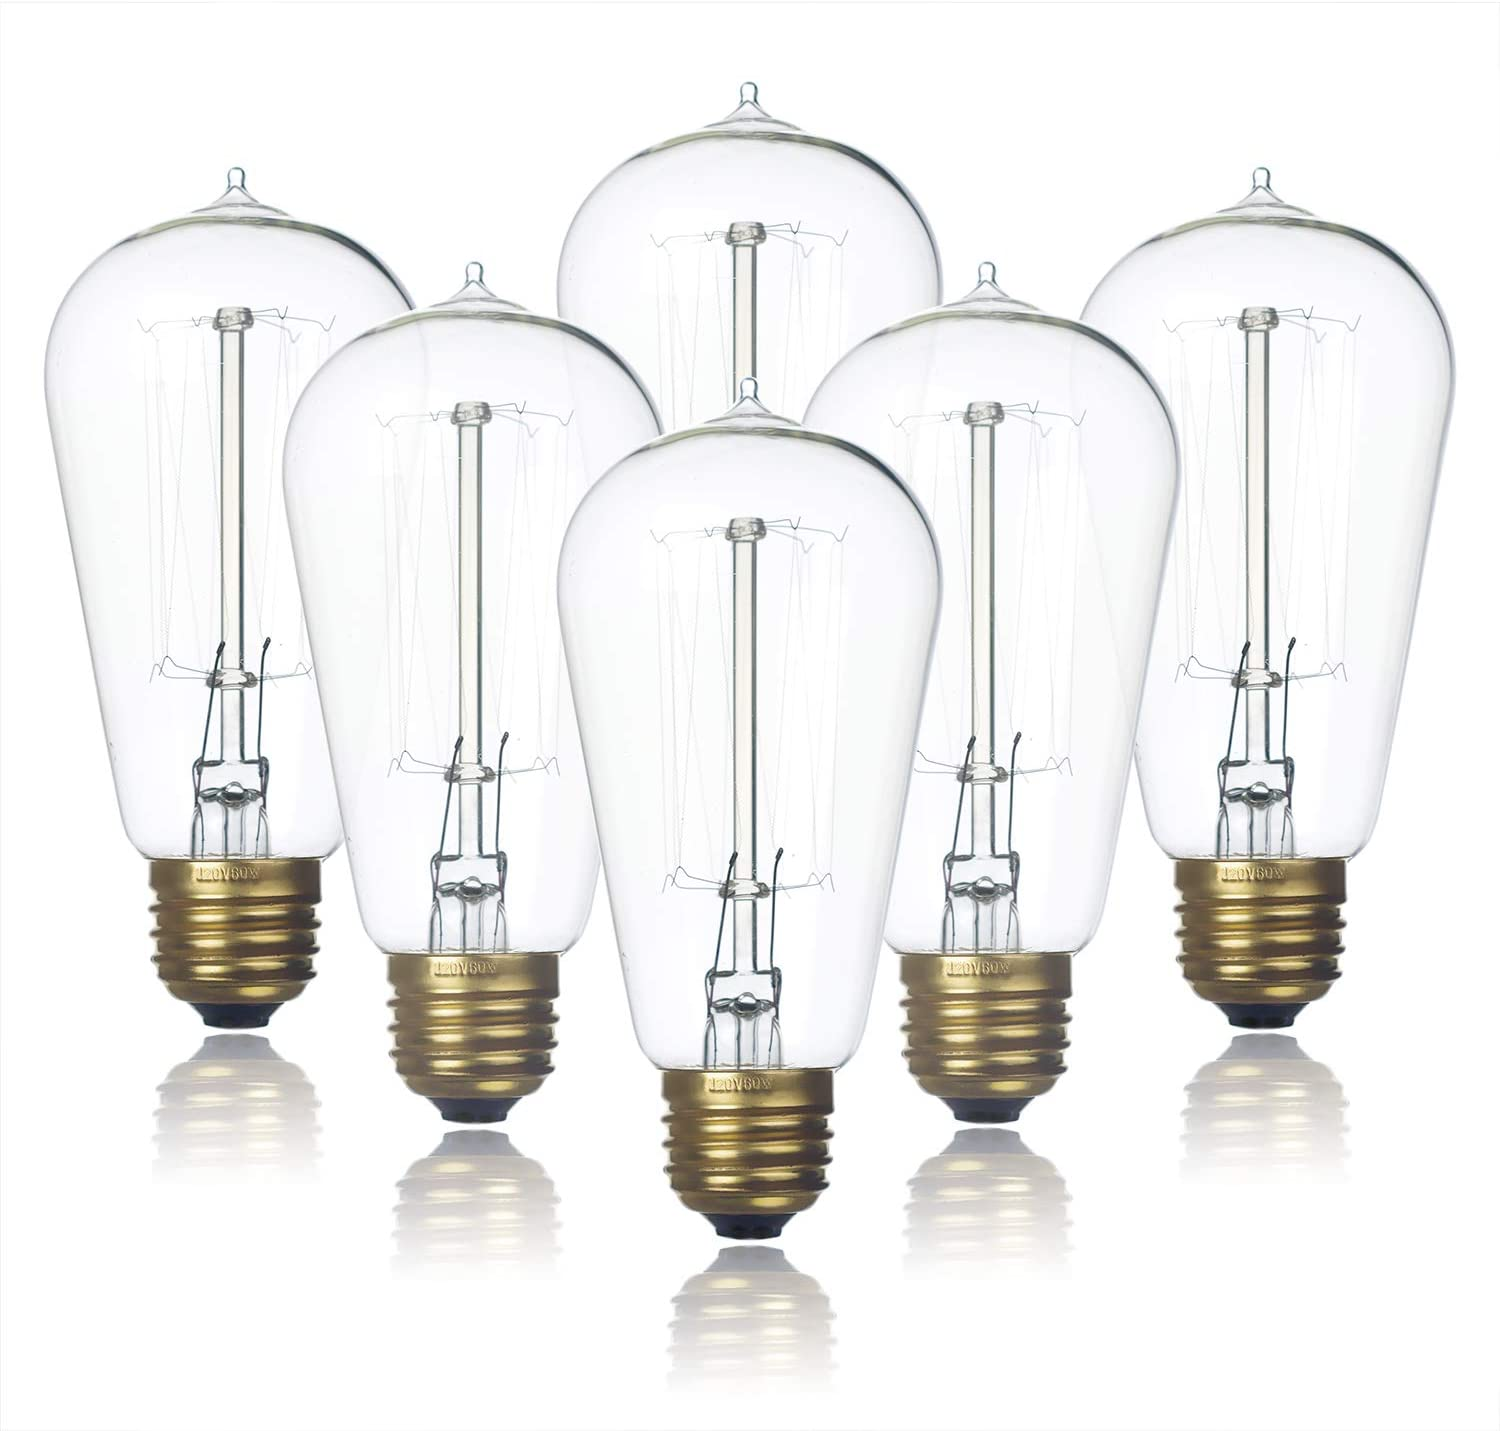 6-Pack Edison Light Bulb, Clear Glass Warm White Old Fashioned Incandescent Light, Jslinter 60 Watt Dimmable ST58 Antique Vintage Style Light, e26 Base(60w/110v)